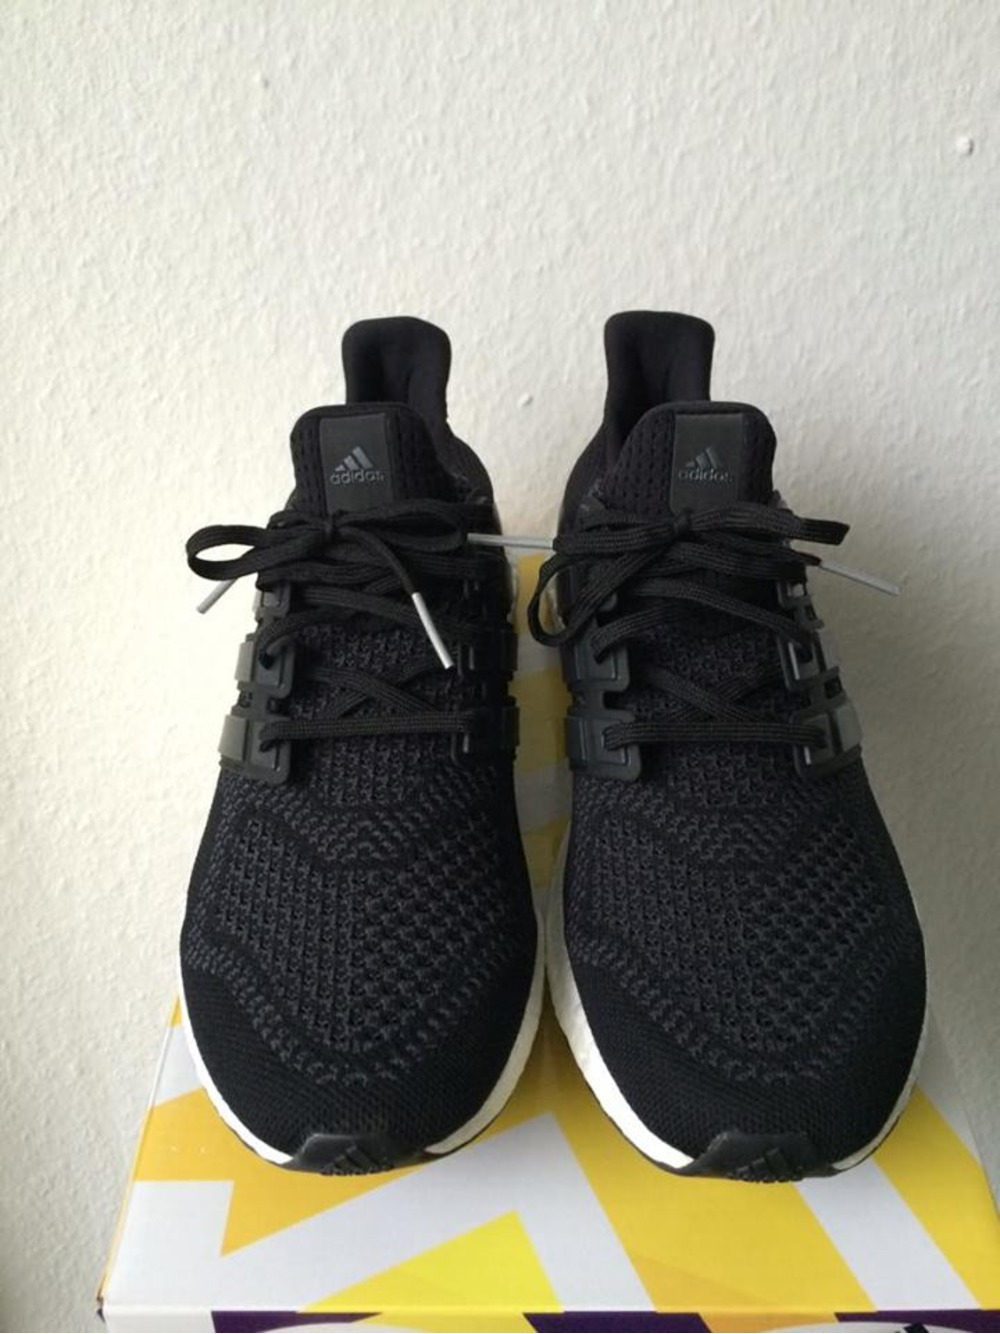 63c7e44eb28 Adidas Ultra Boost Core Black 1.0 wallbank-lfc.co.uk